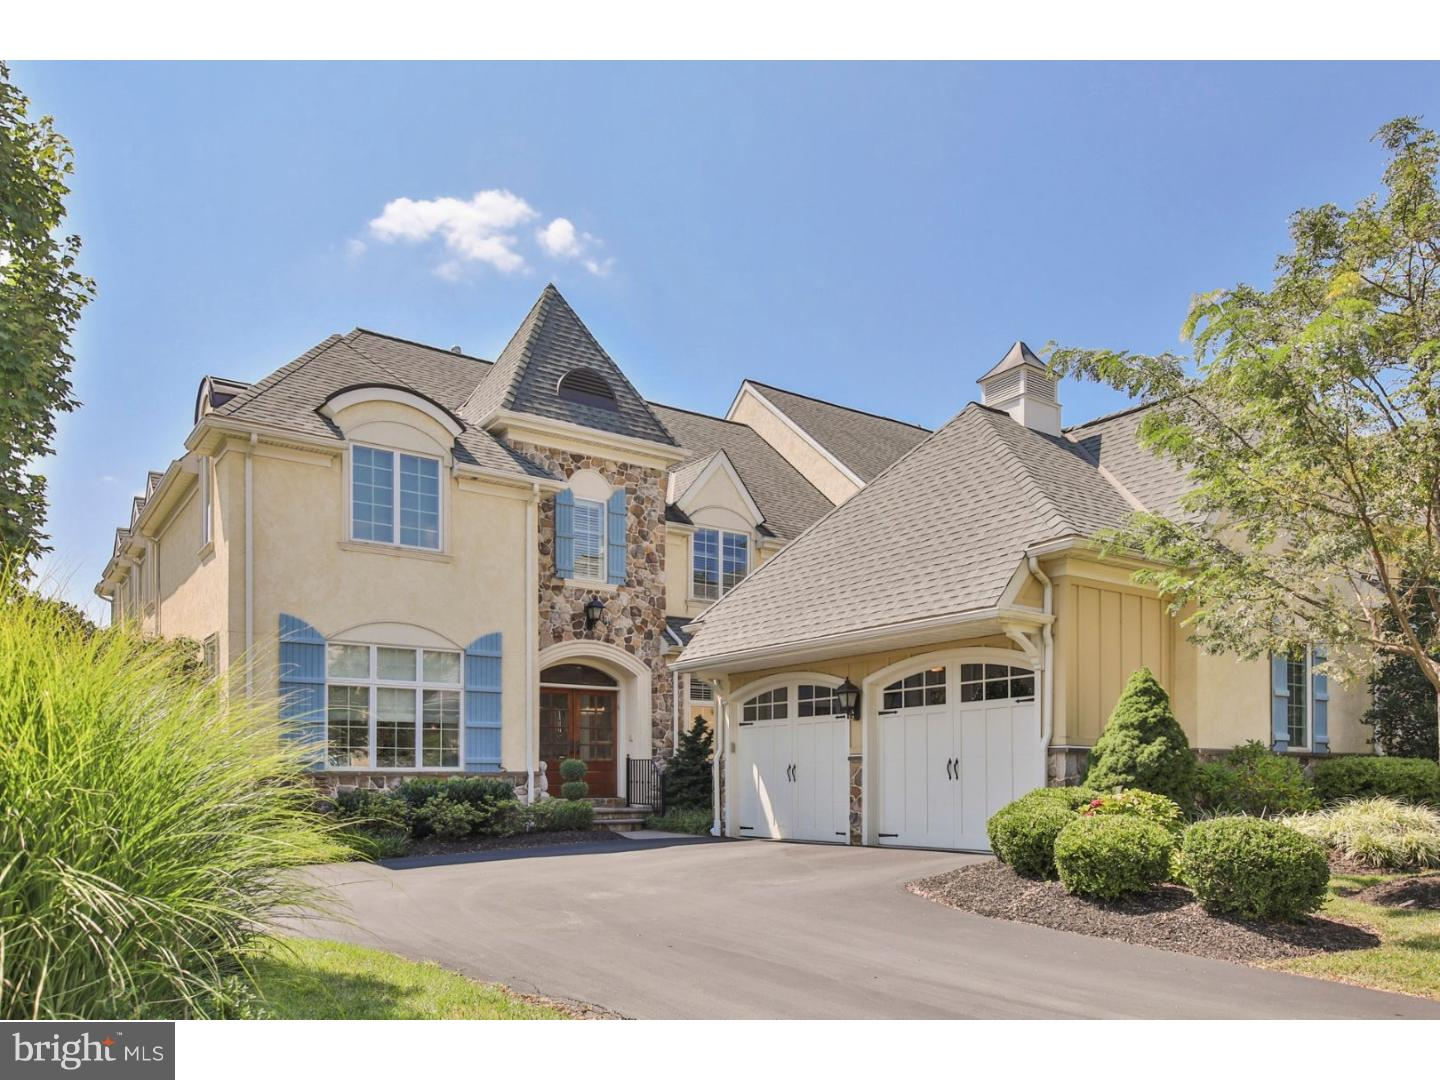 245 Valley Ridge Road Haverford, PA 19041